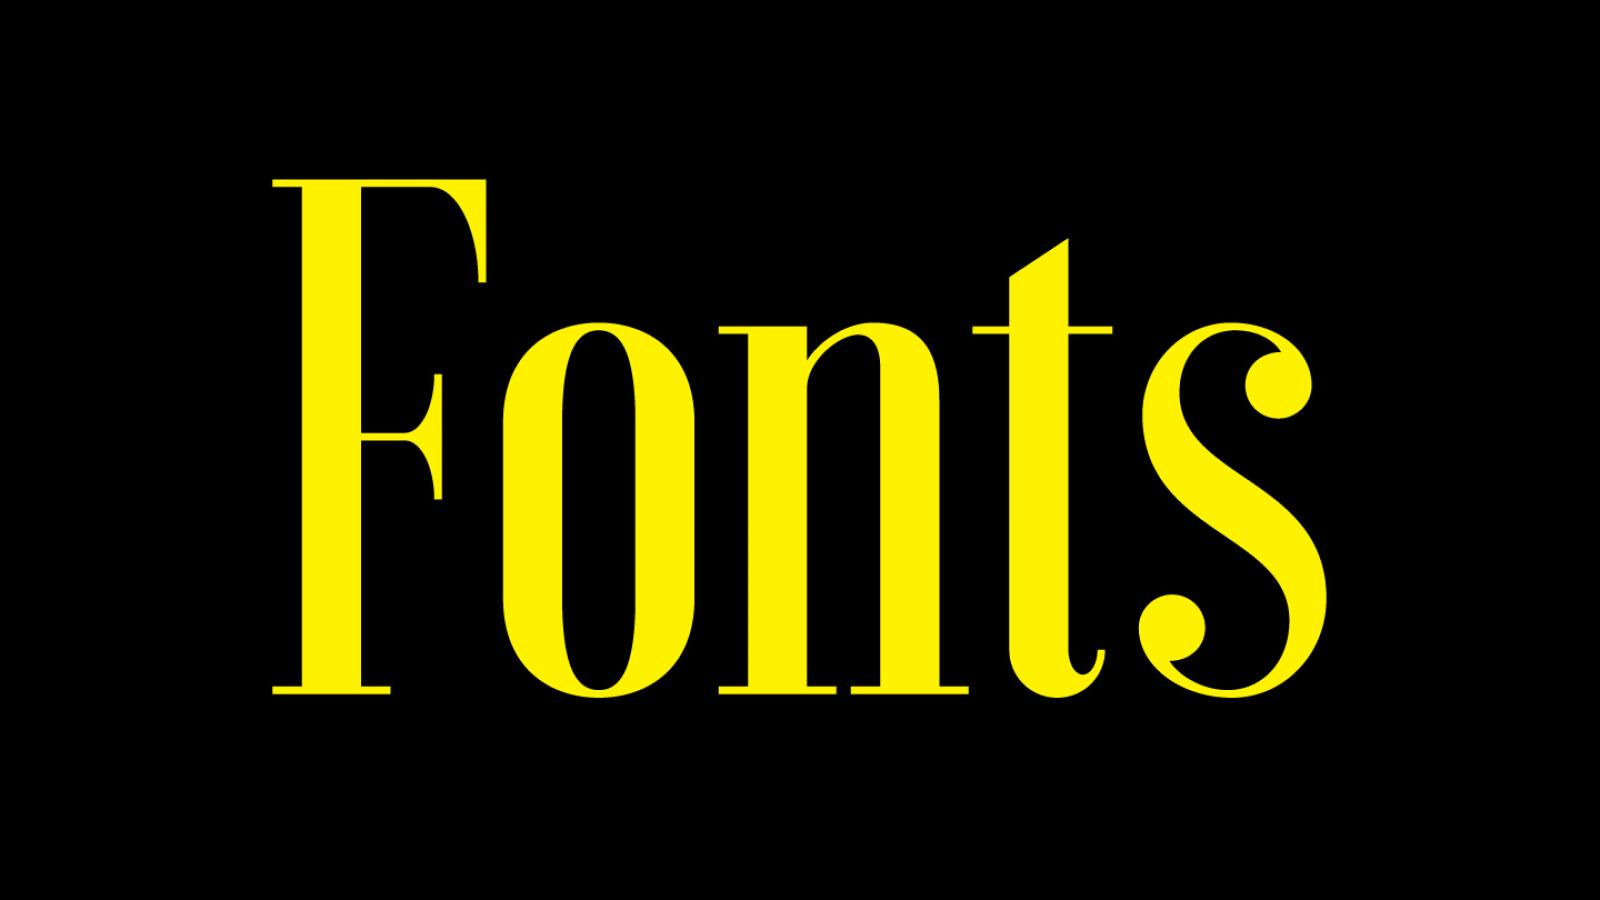 Friday Fresh Free Fonts - Leon, Smidwater, Voga